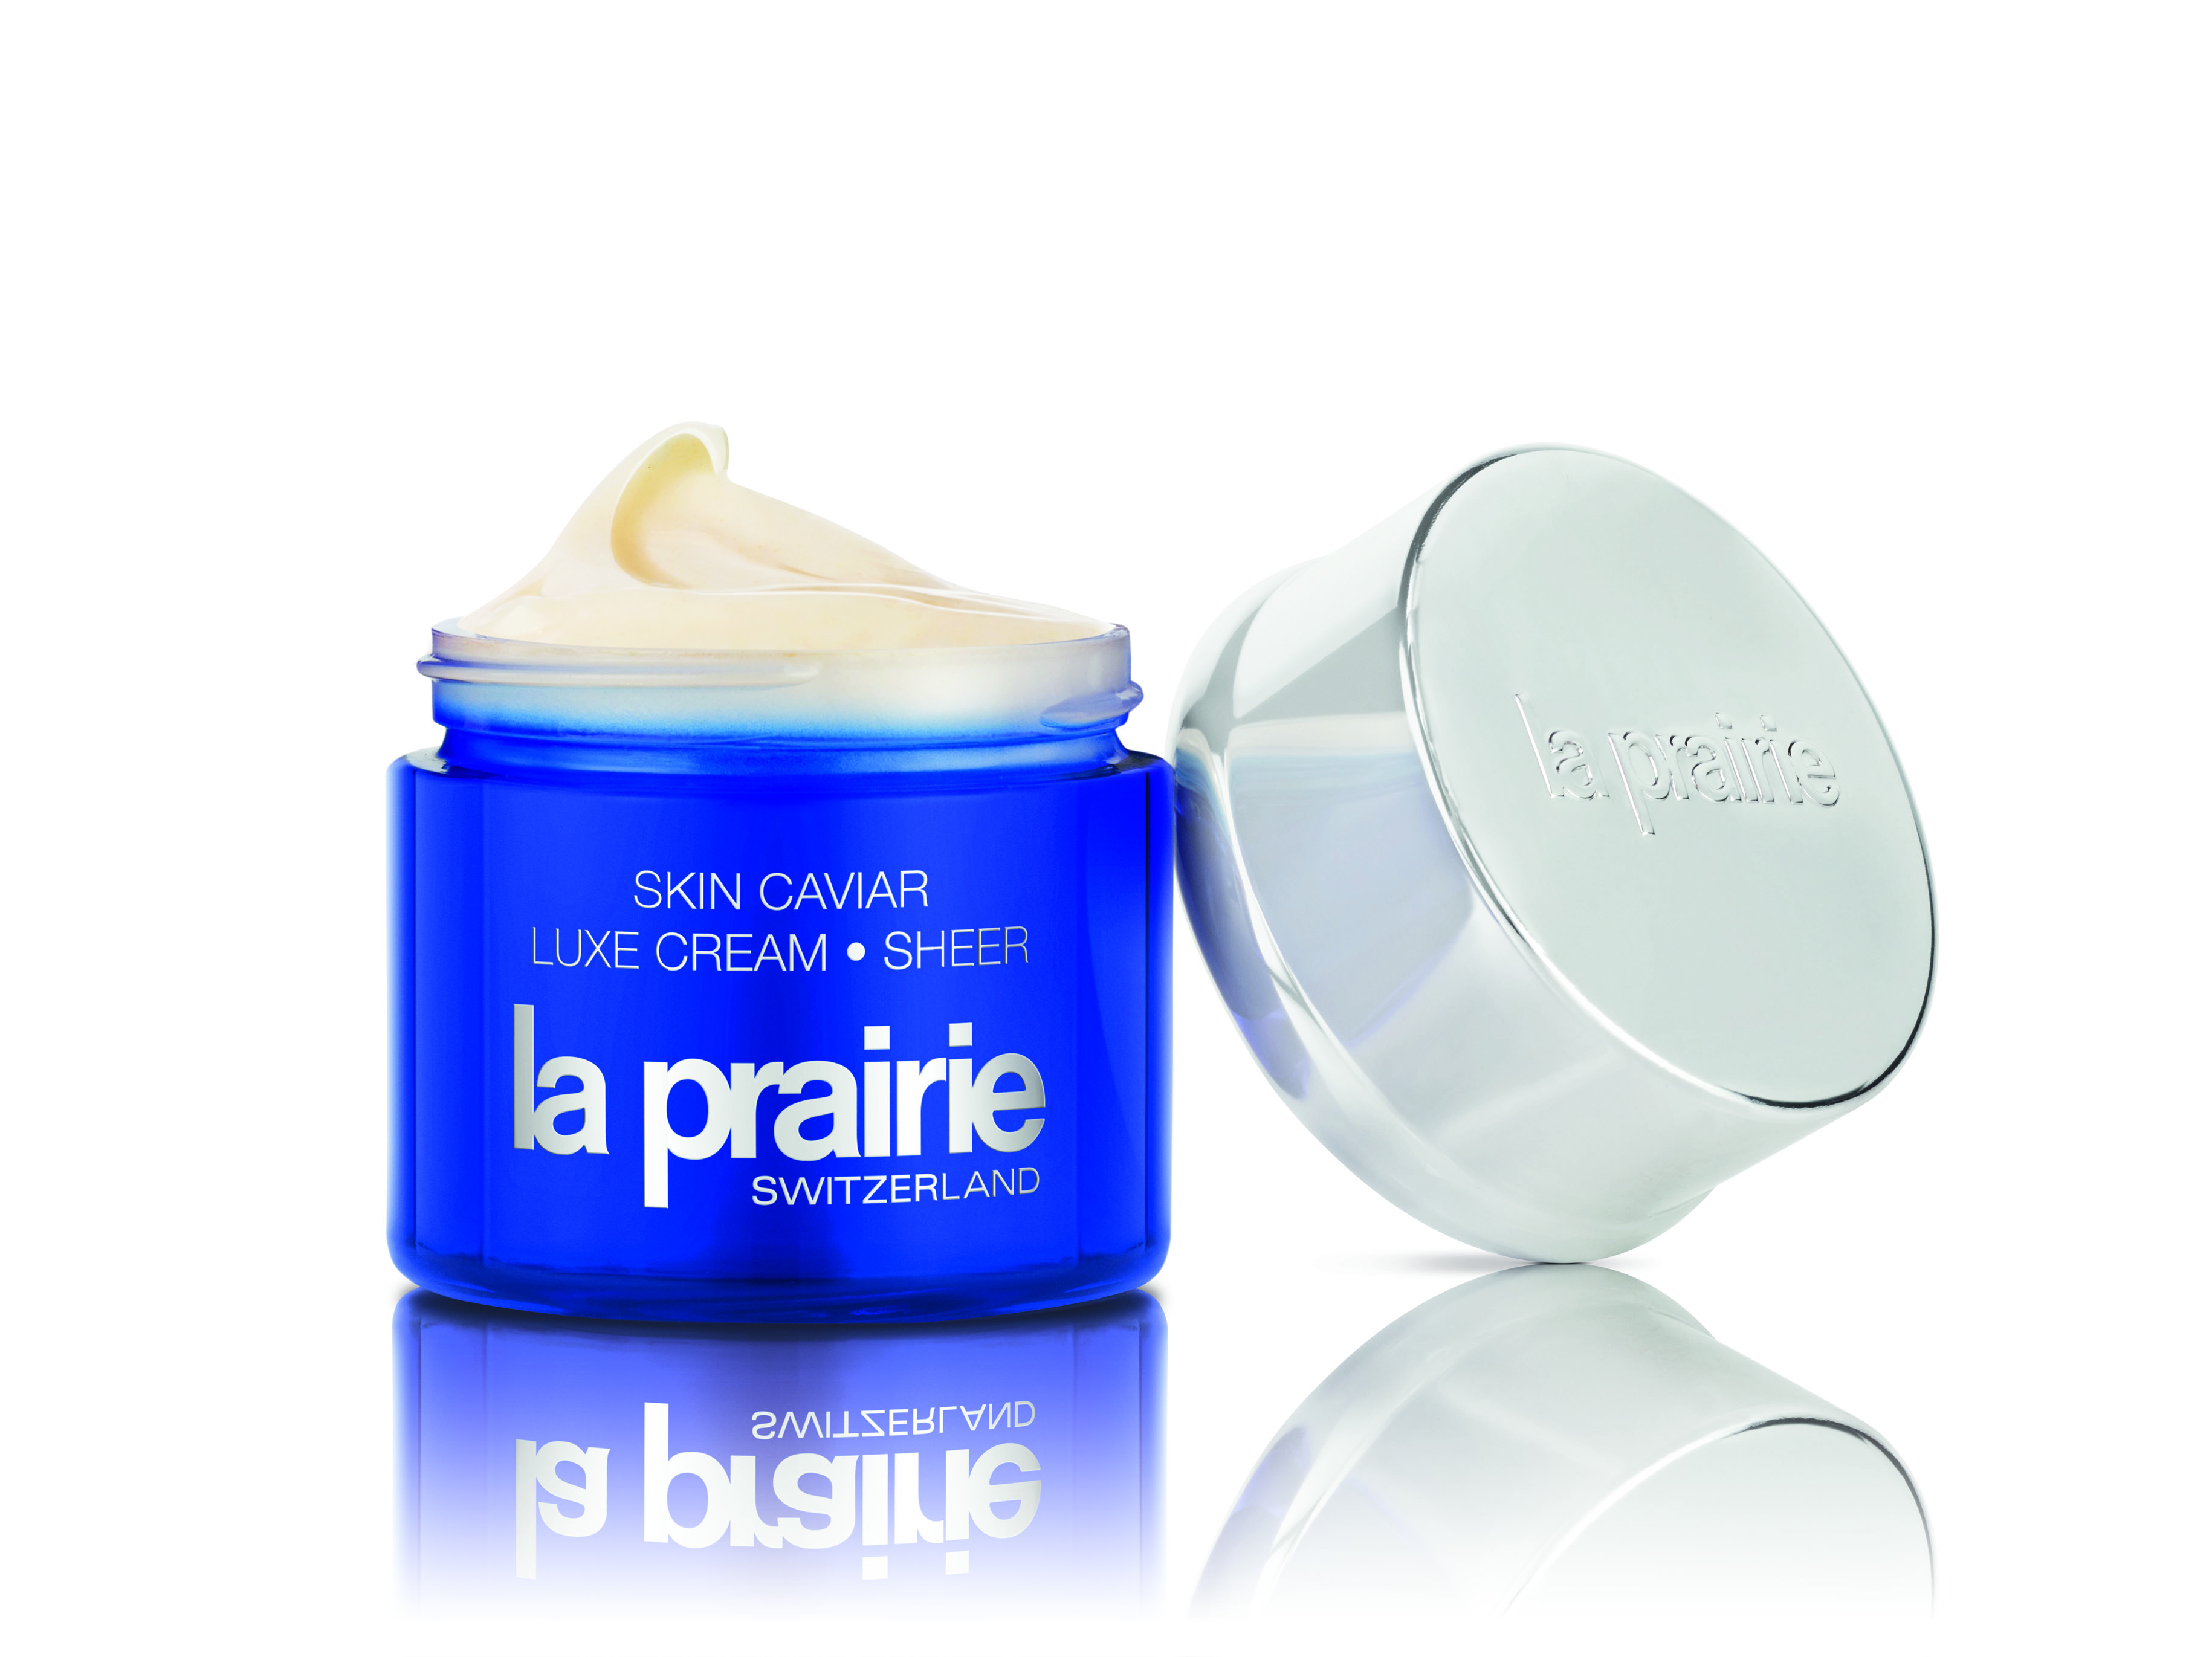 La Prairie Skin Caviar Luxe Cream, is a lightweight moisturizer, that absorbs quickly and it allows for easy reapplication - protecting the skin from dehydration on board.